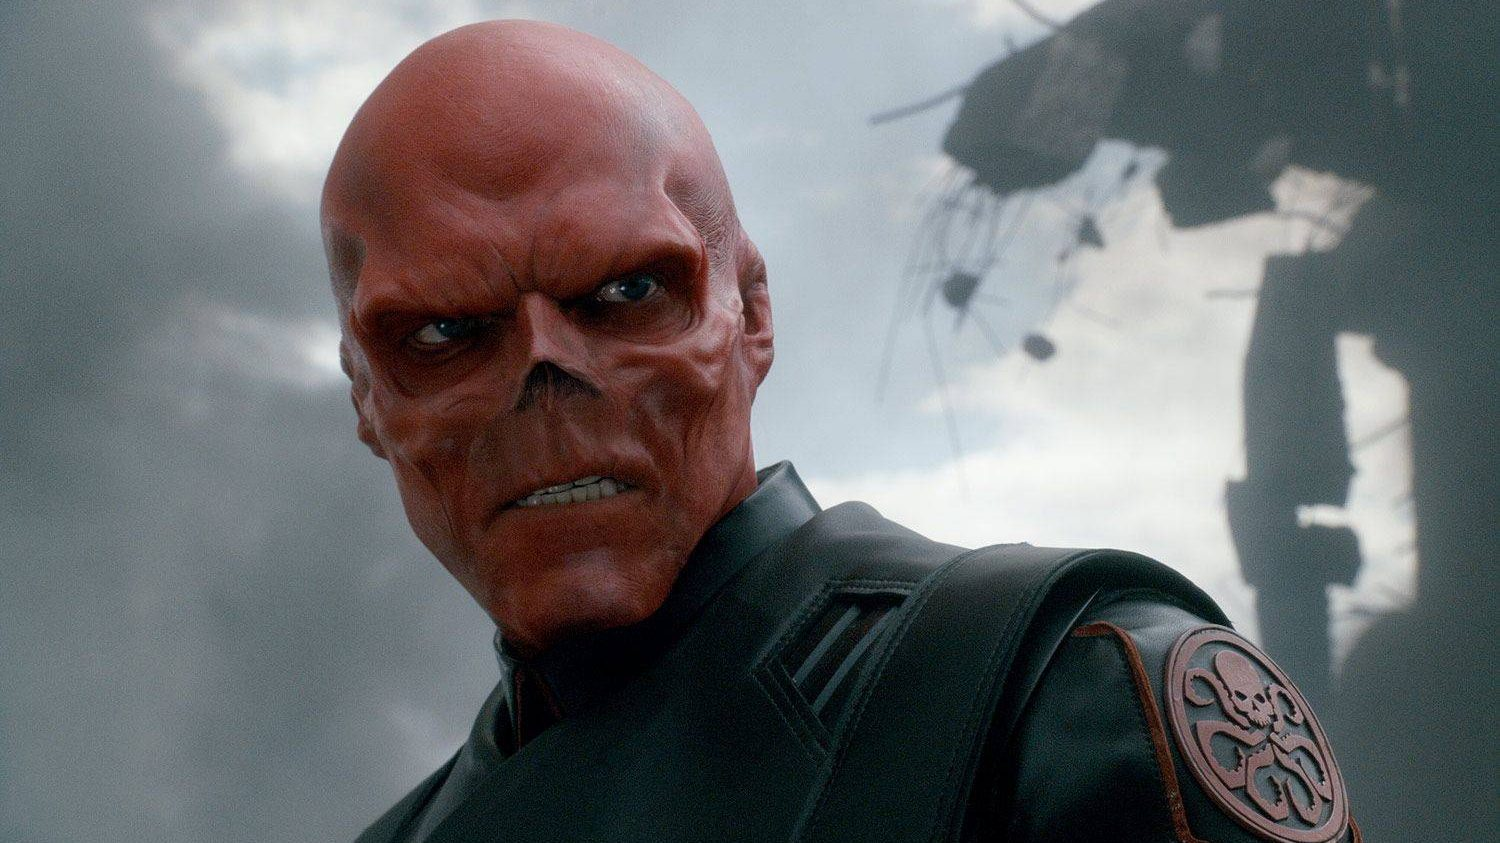 crazy-fan-theories-about-mcu-villains-that-could-be-true